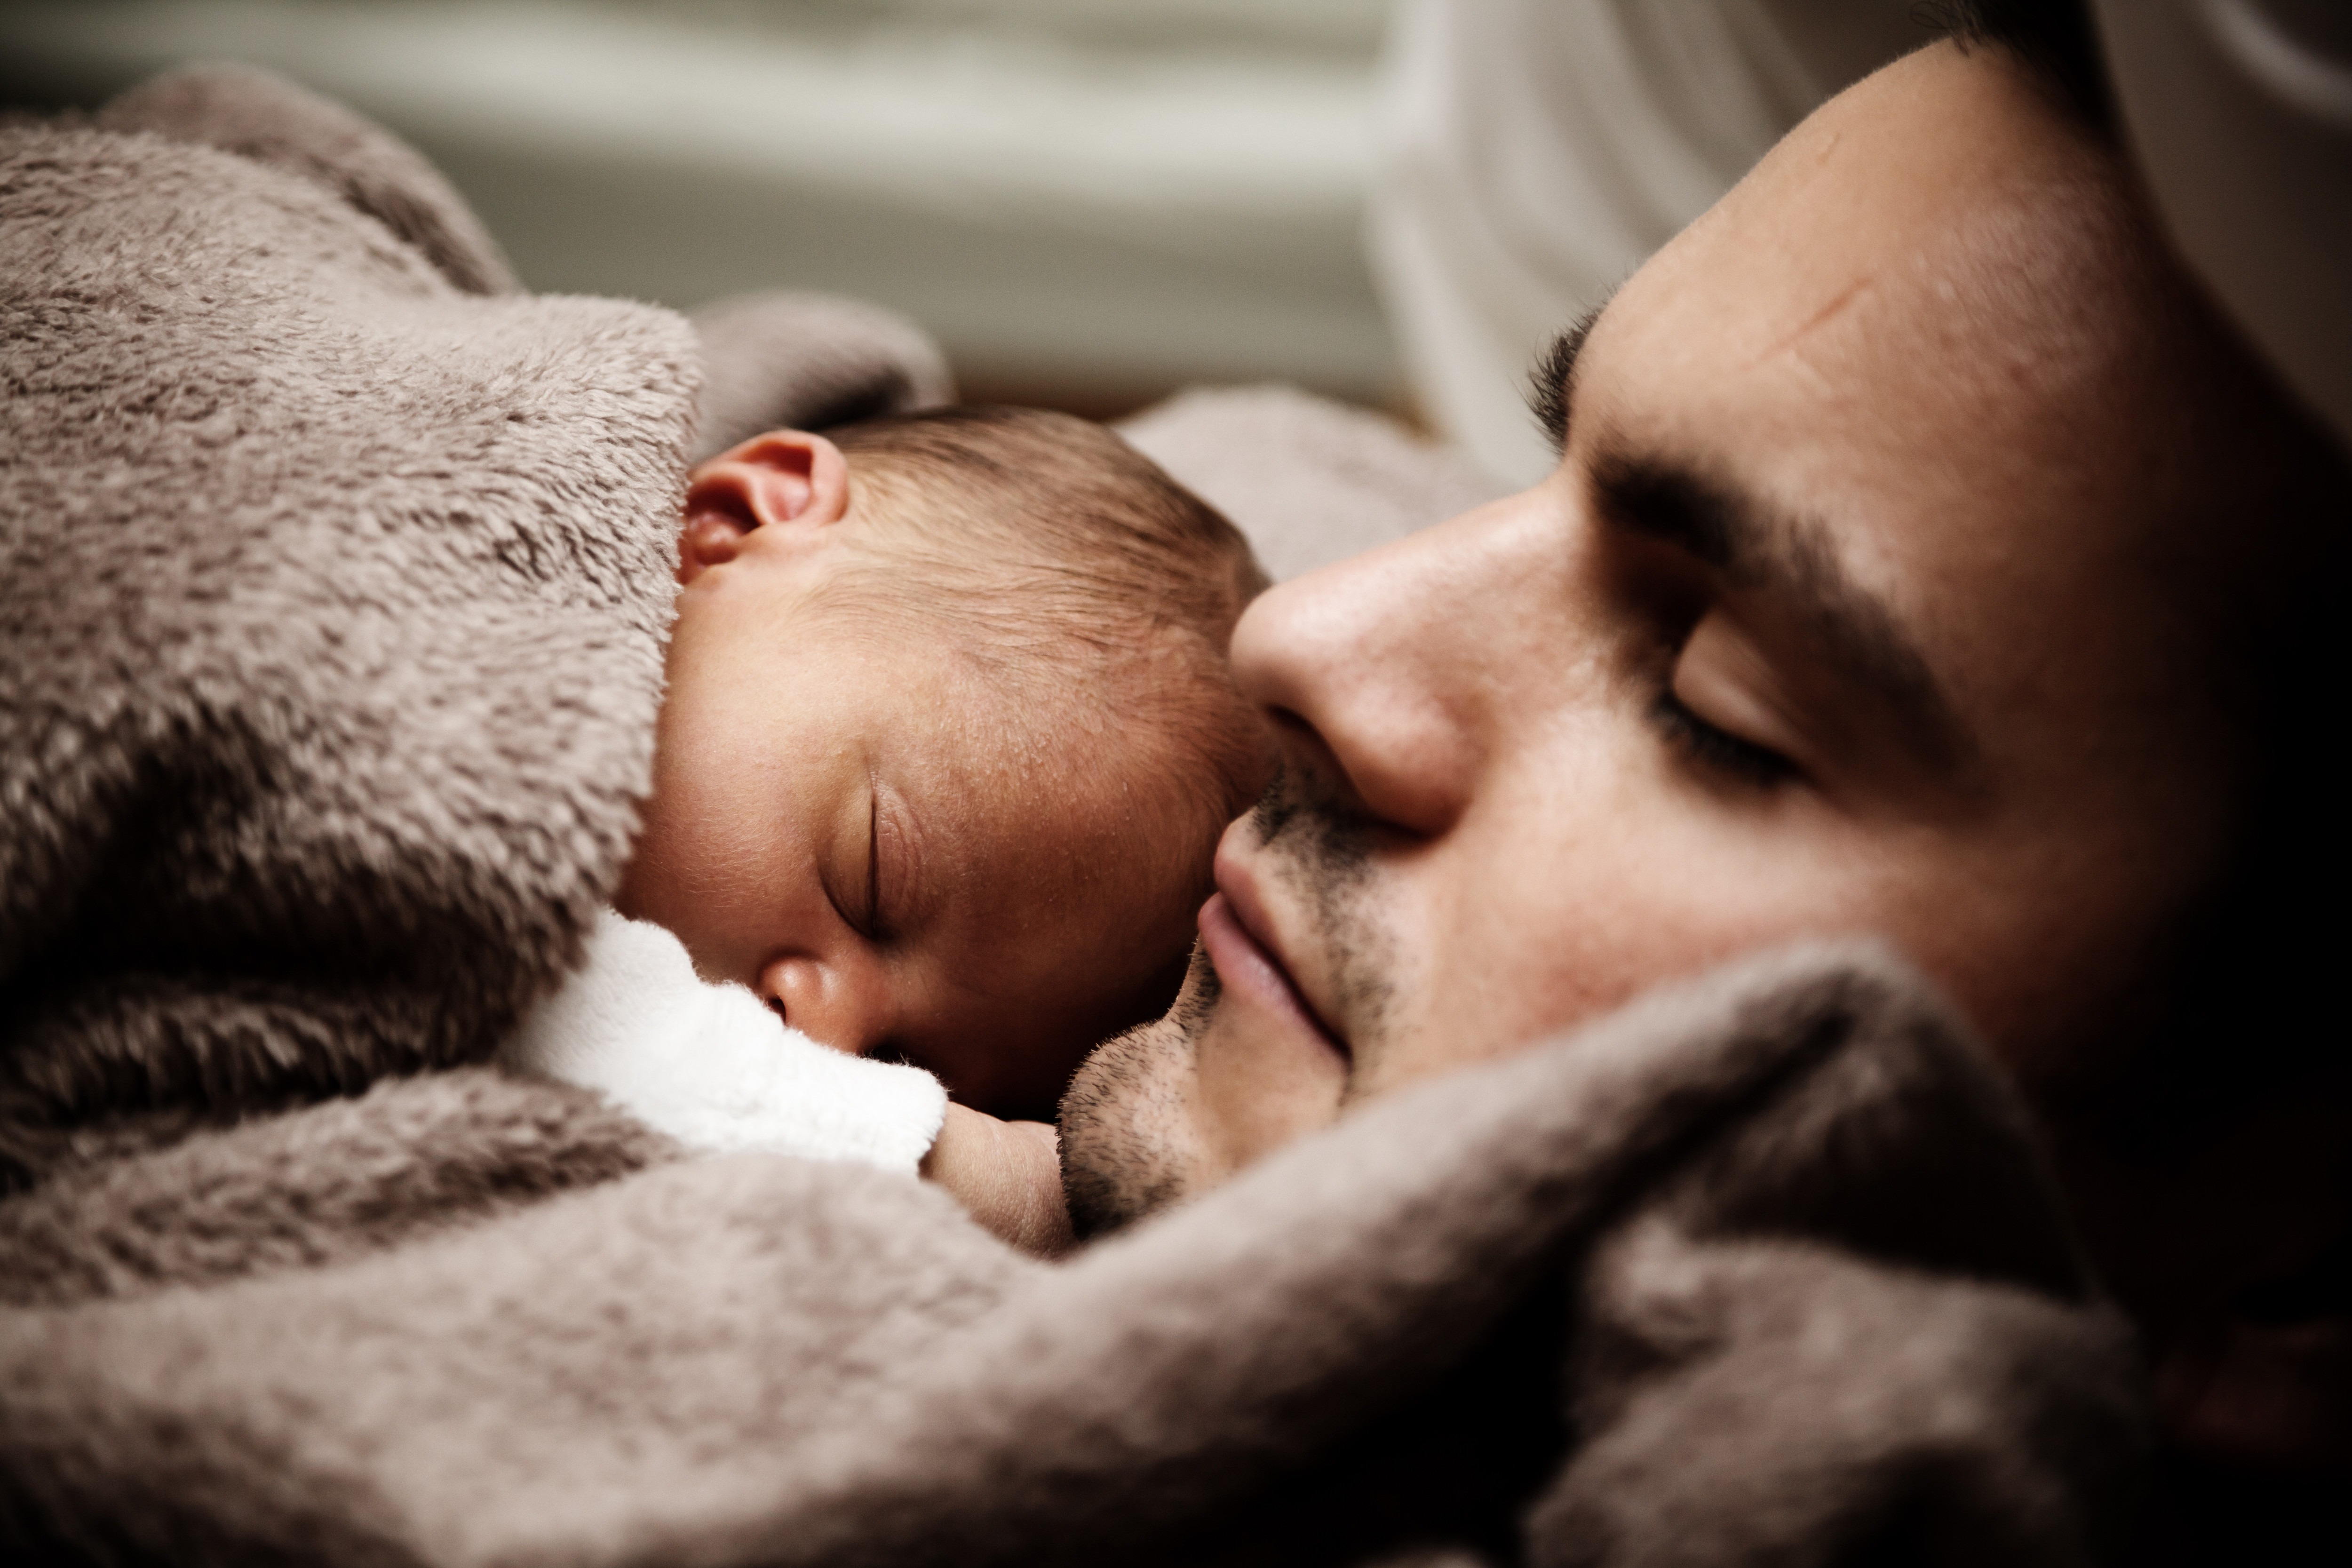 Father and Baby, Activity, Affection, Baby, Father, HQ Photo